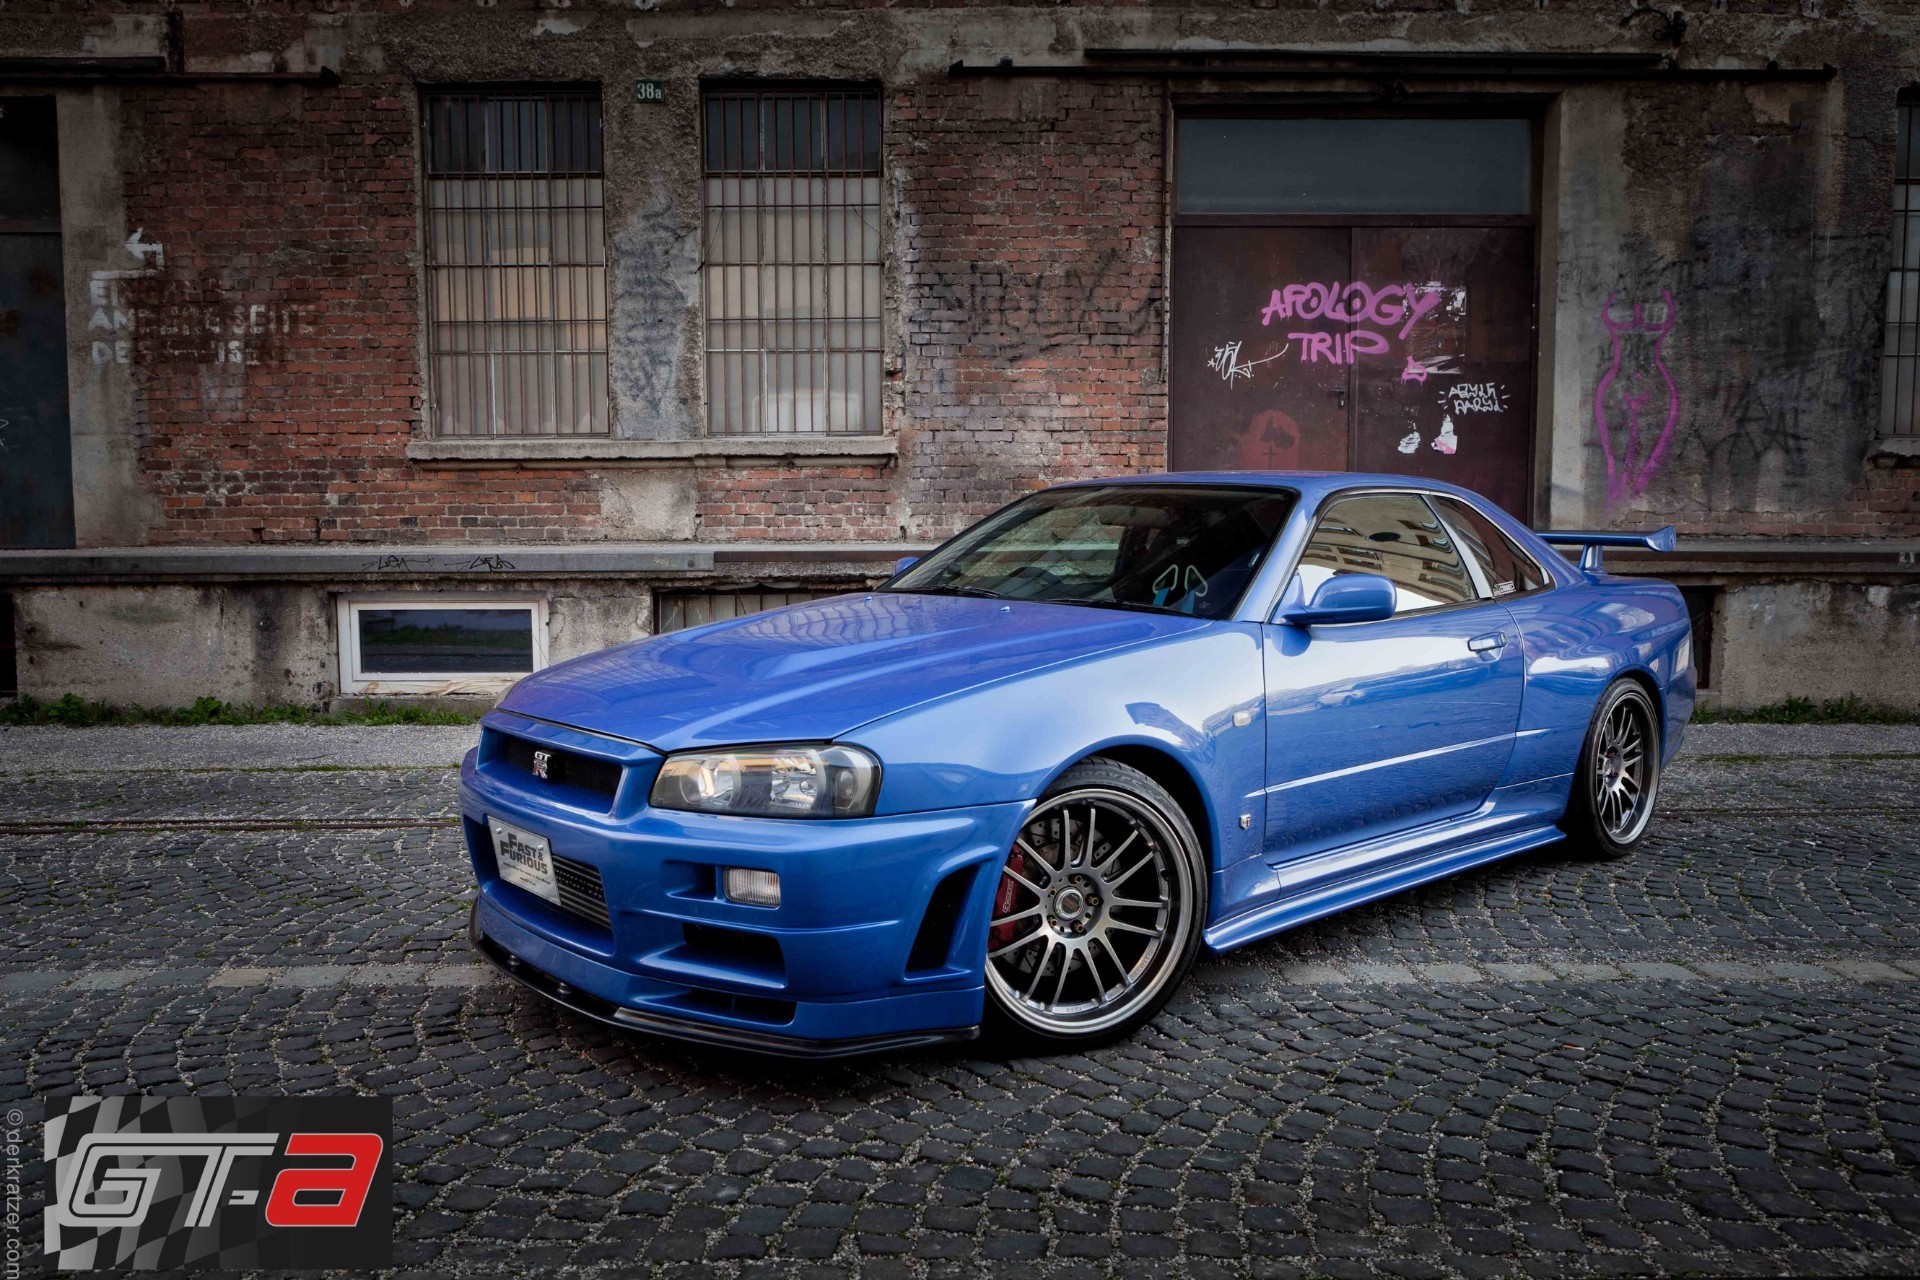 Paul Walker's 'Fast & Furious 4' R34 Nissan GT-R For Sale, Priced At $1.35 Million